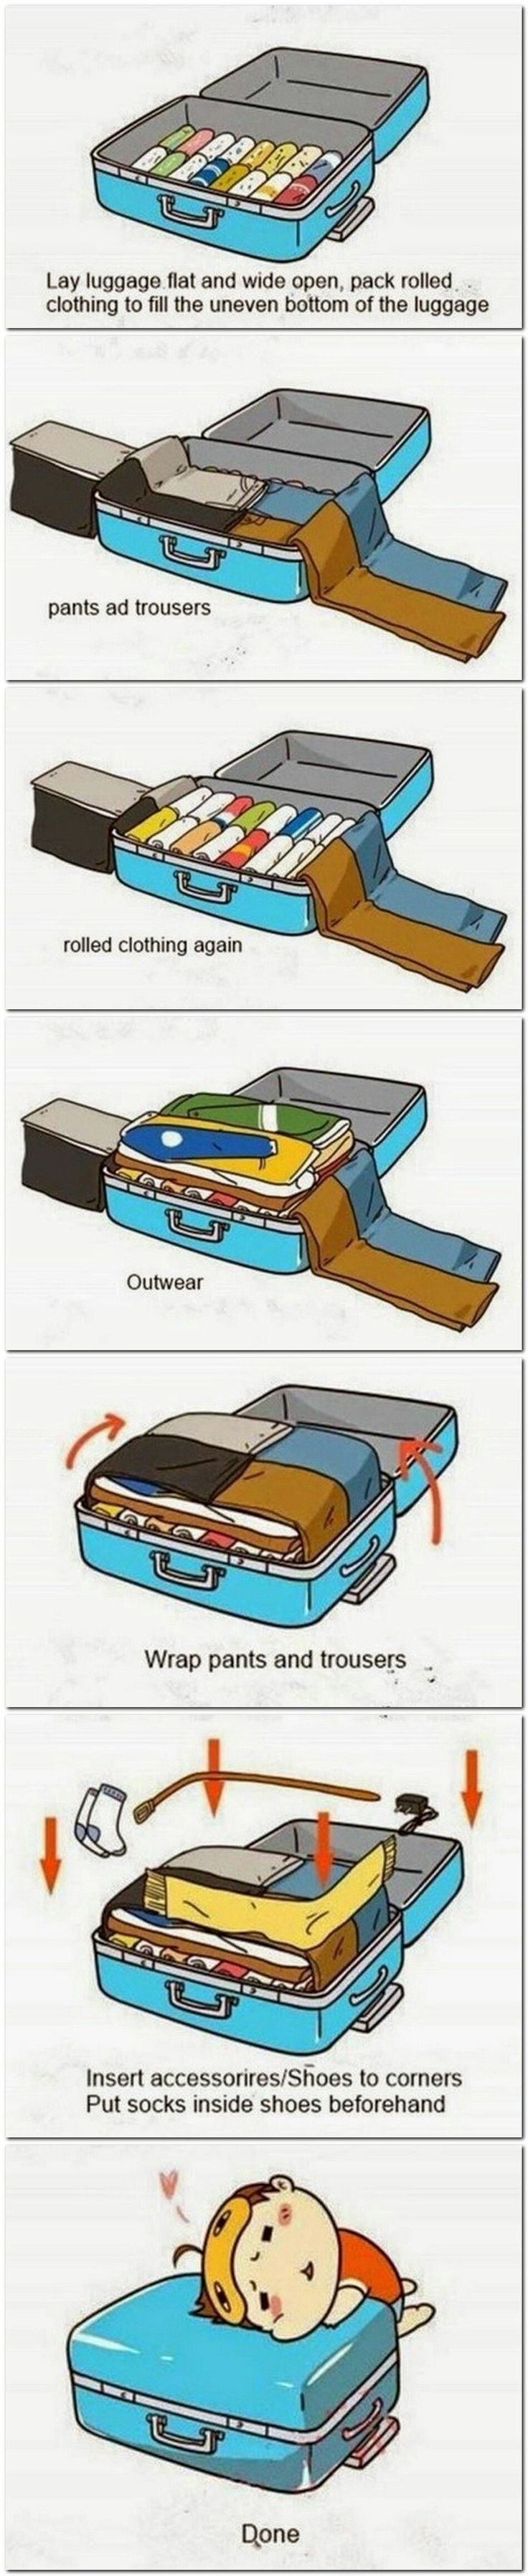 Packing tips, to make fitting everything in your suitcase a breeze!! Make it carry-on for budget travel! #travel #luggage